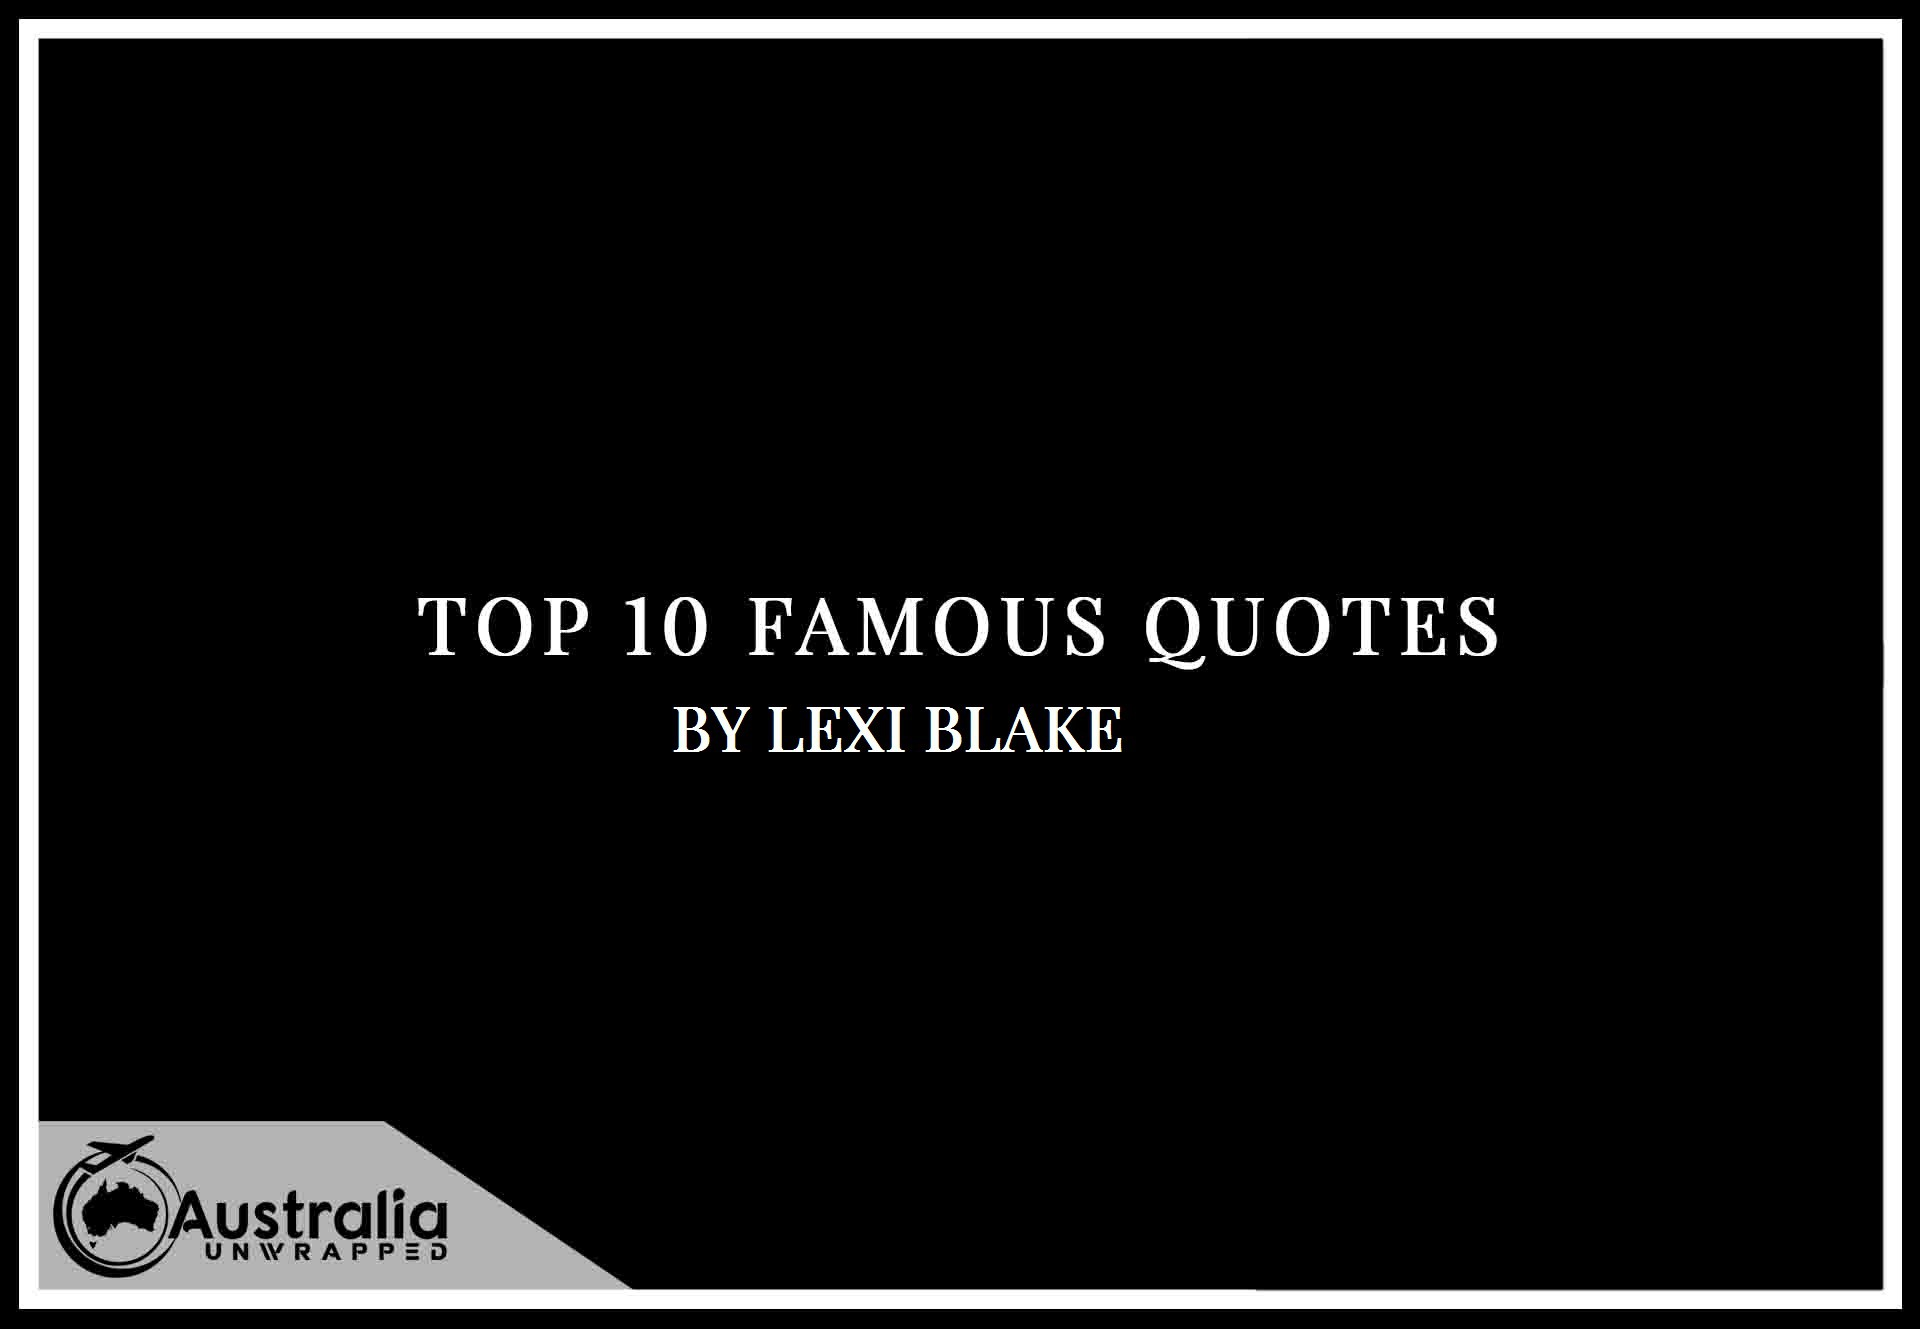 Lexi Blake's Top 10 Popular and Famous Quotes